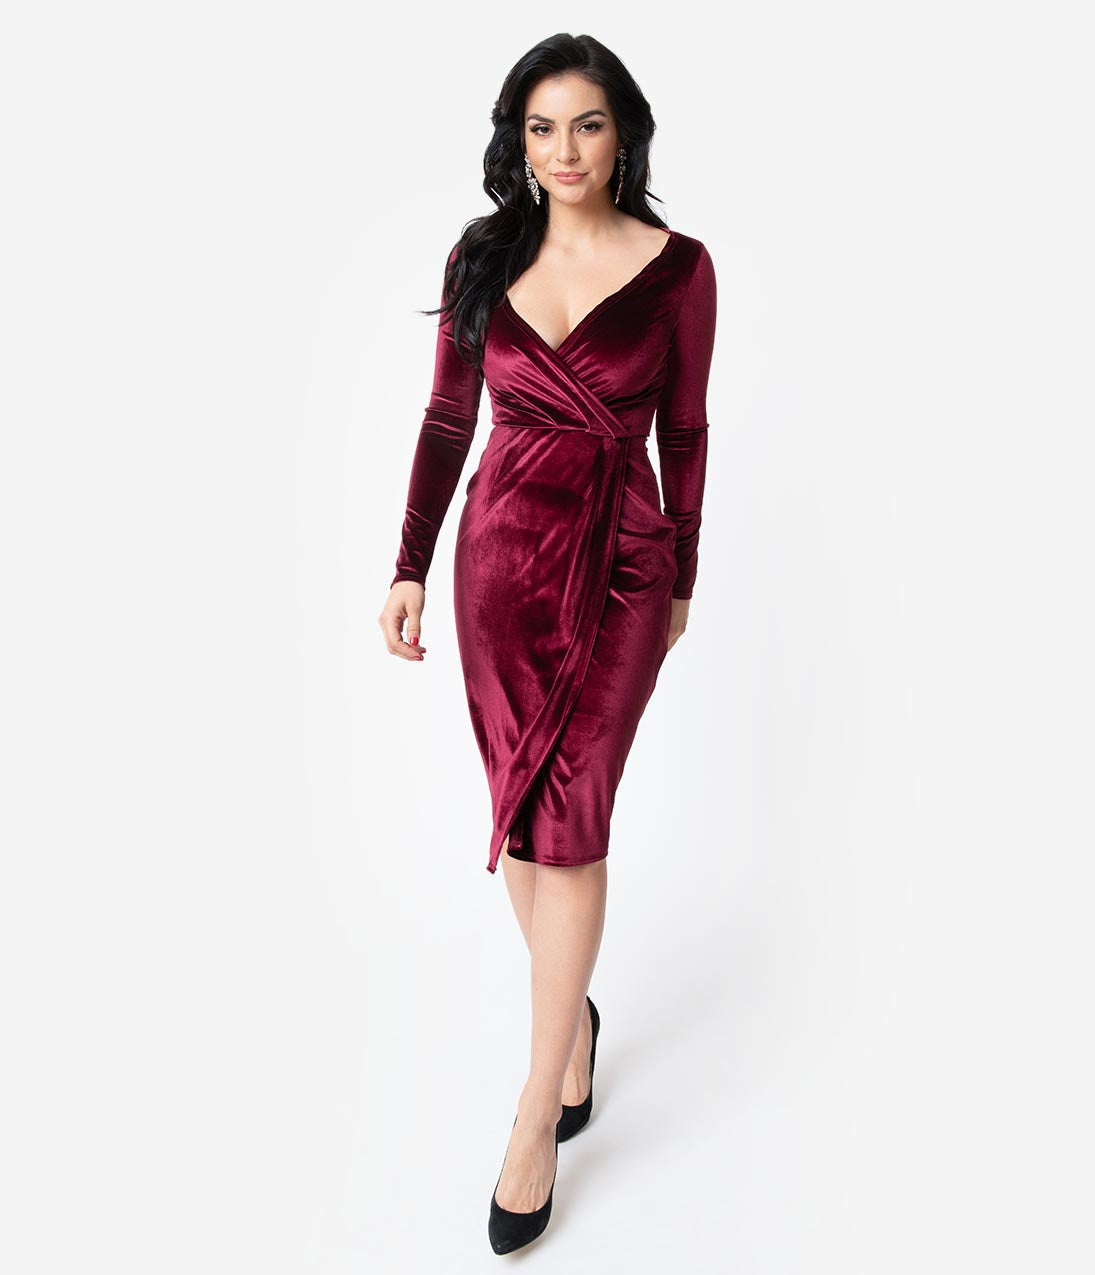 Vintage Christmas Gift Ideas for Women Unique Vintage Merlot Red Velvet Long Sleeve Damsel Wiggle Dress $98.00 AT vintagedancer.com